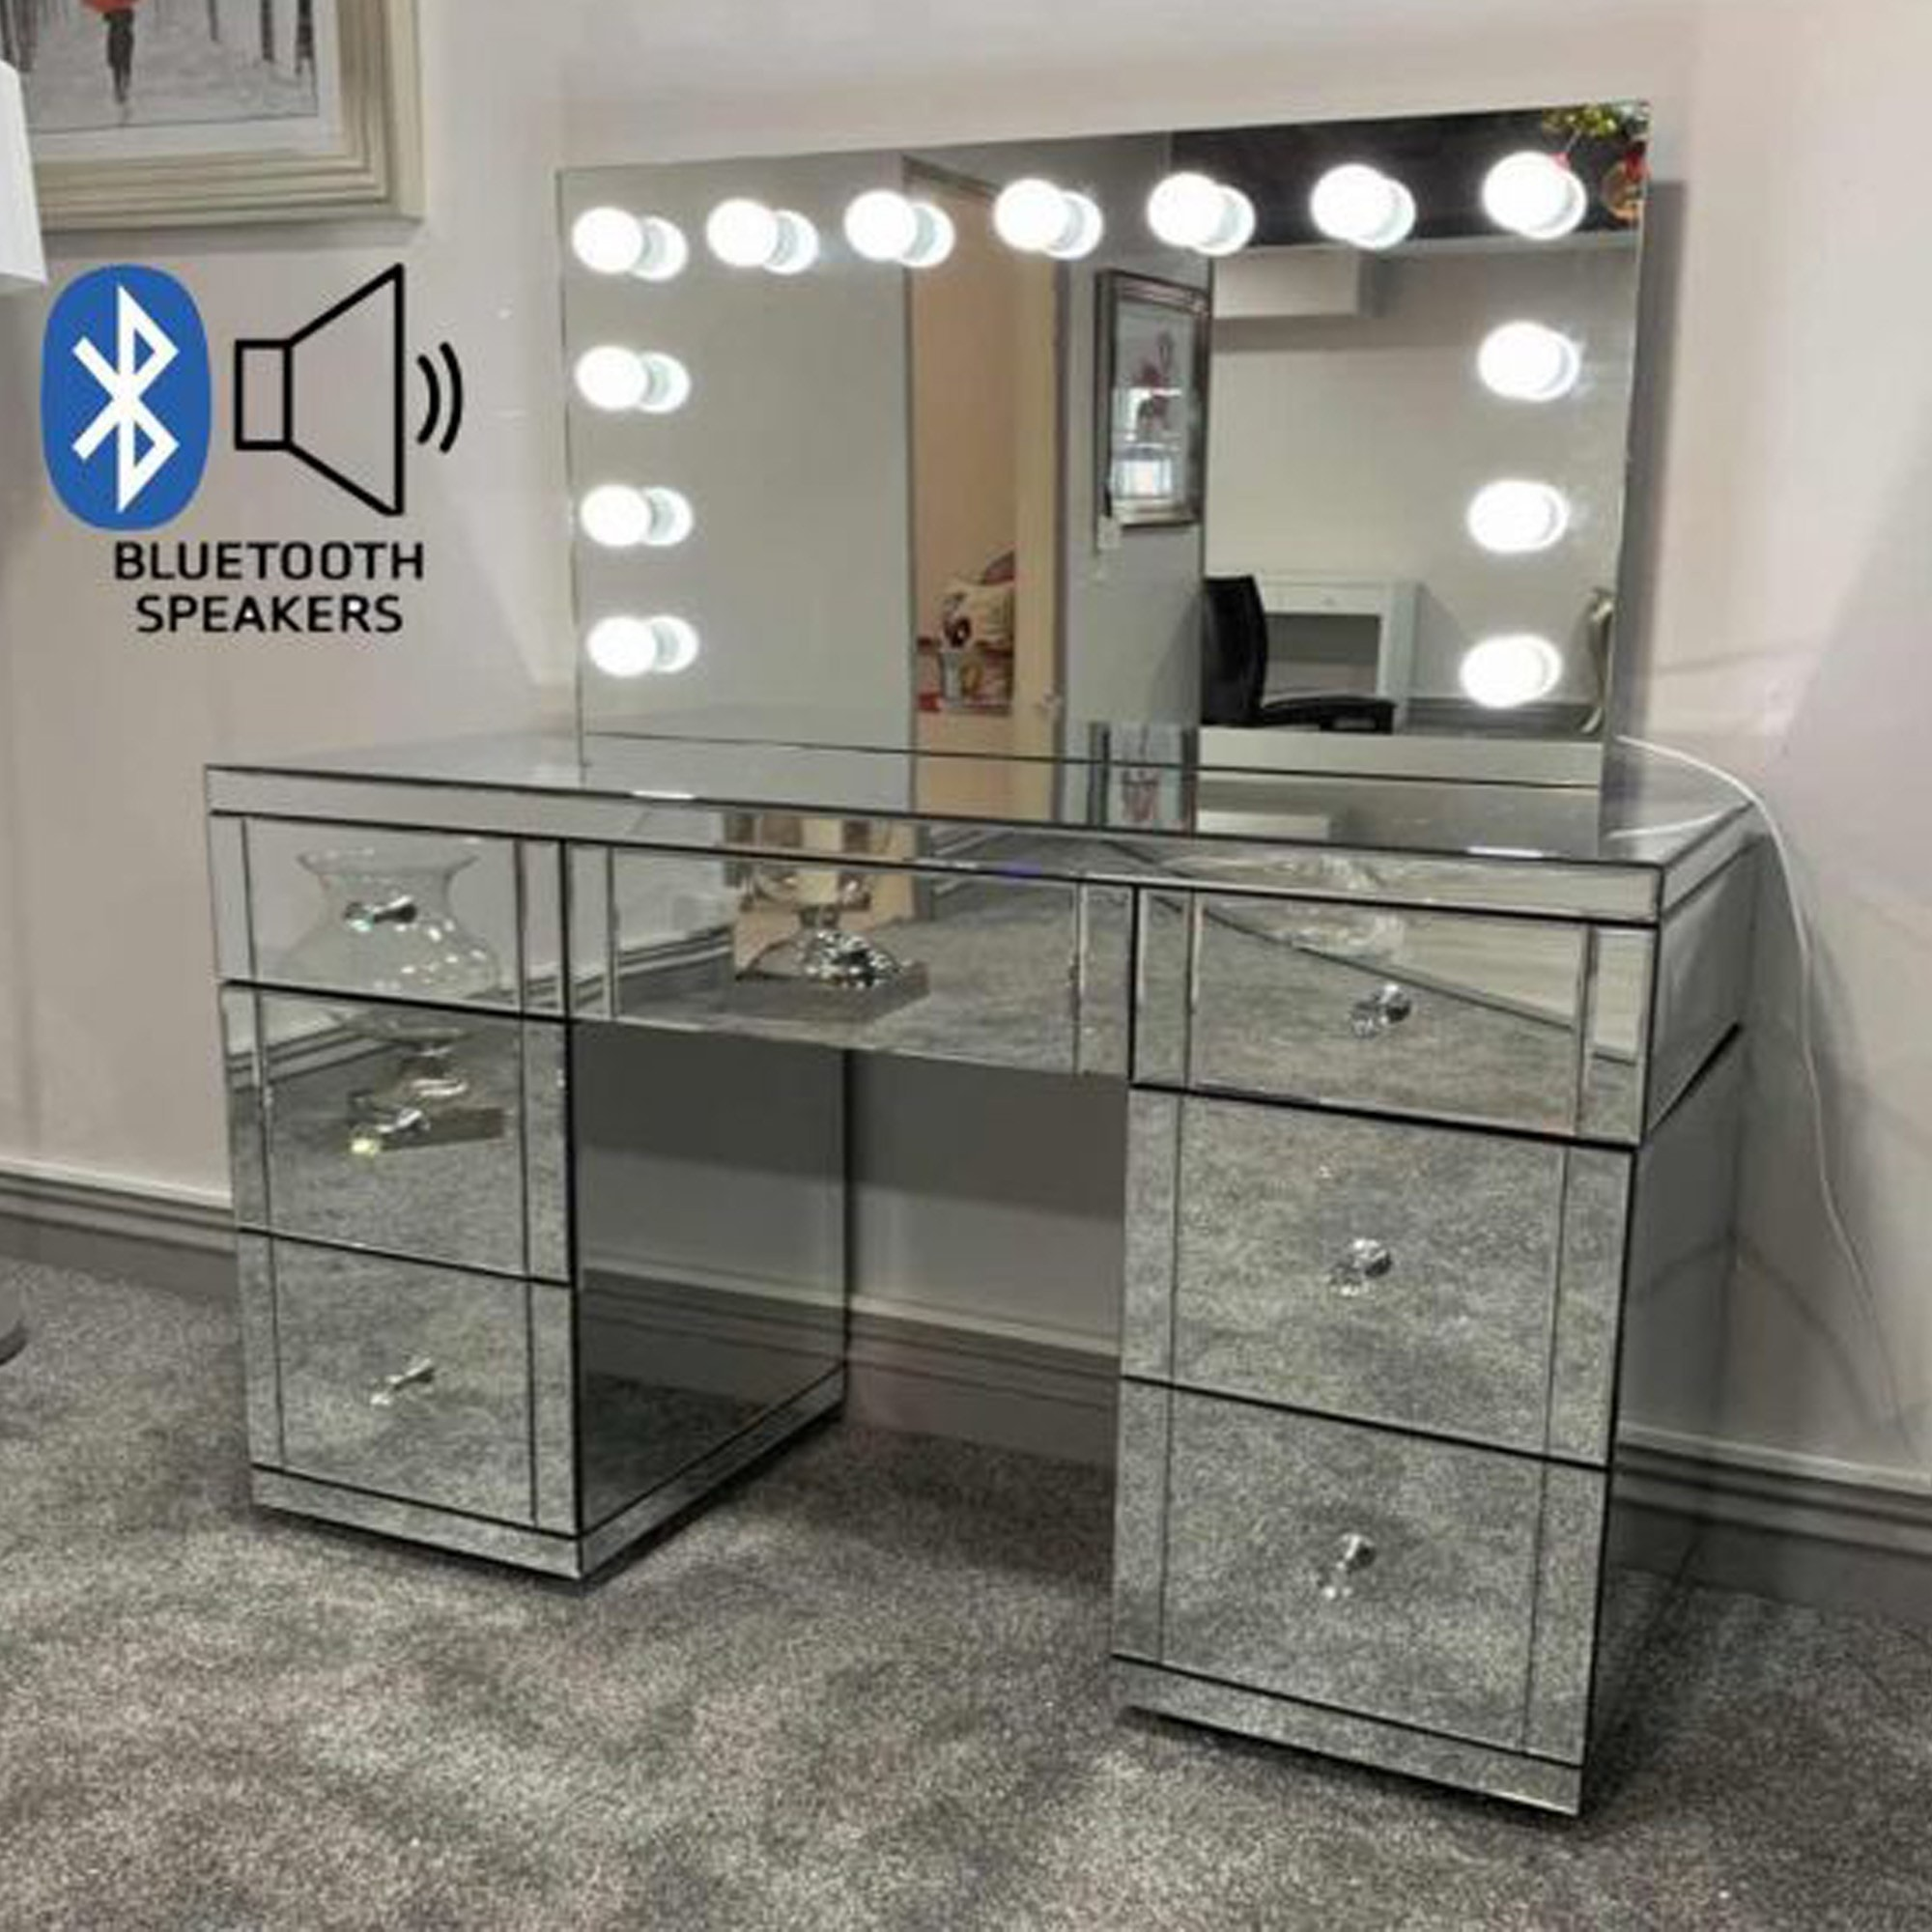 Hollywood Glass Dresser Tabletop Mirror With Bluetooth Speaker